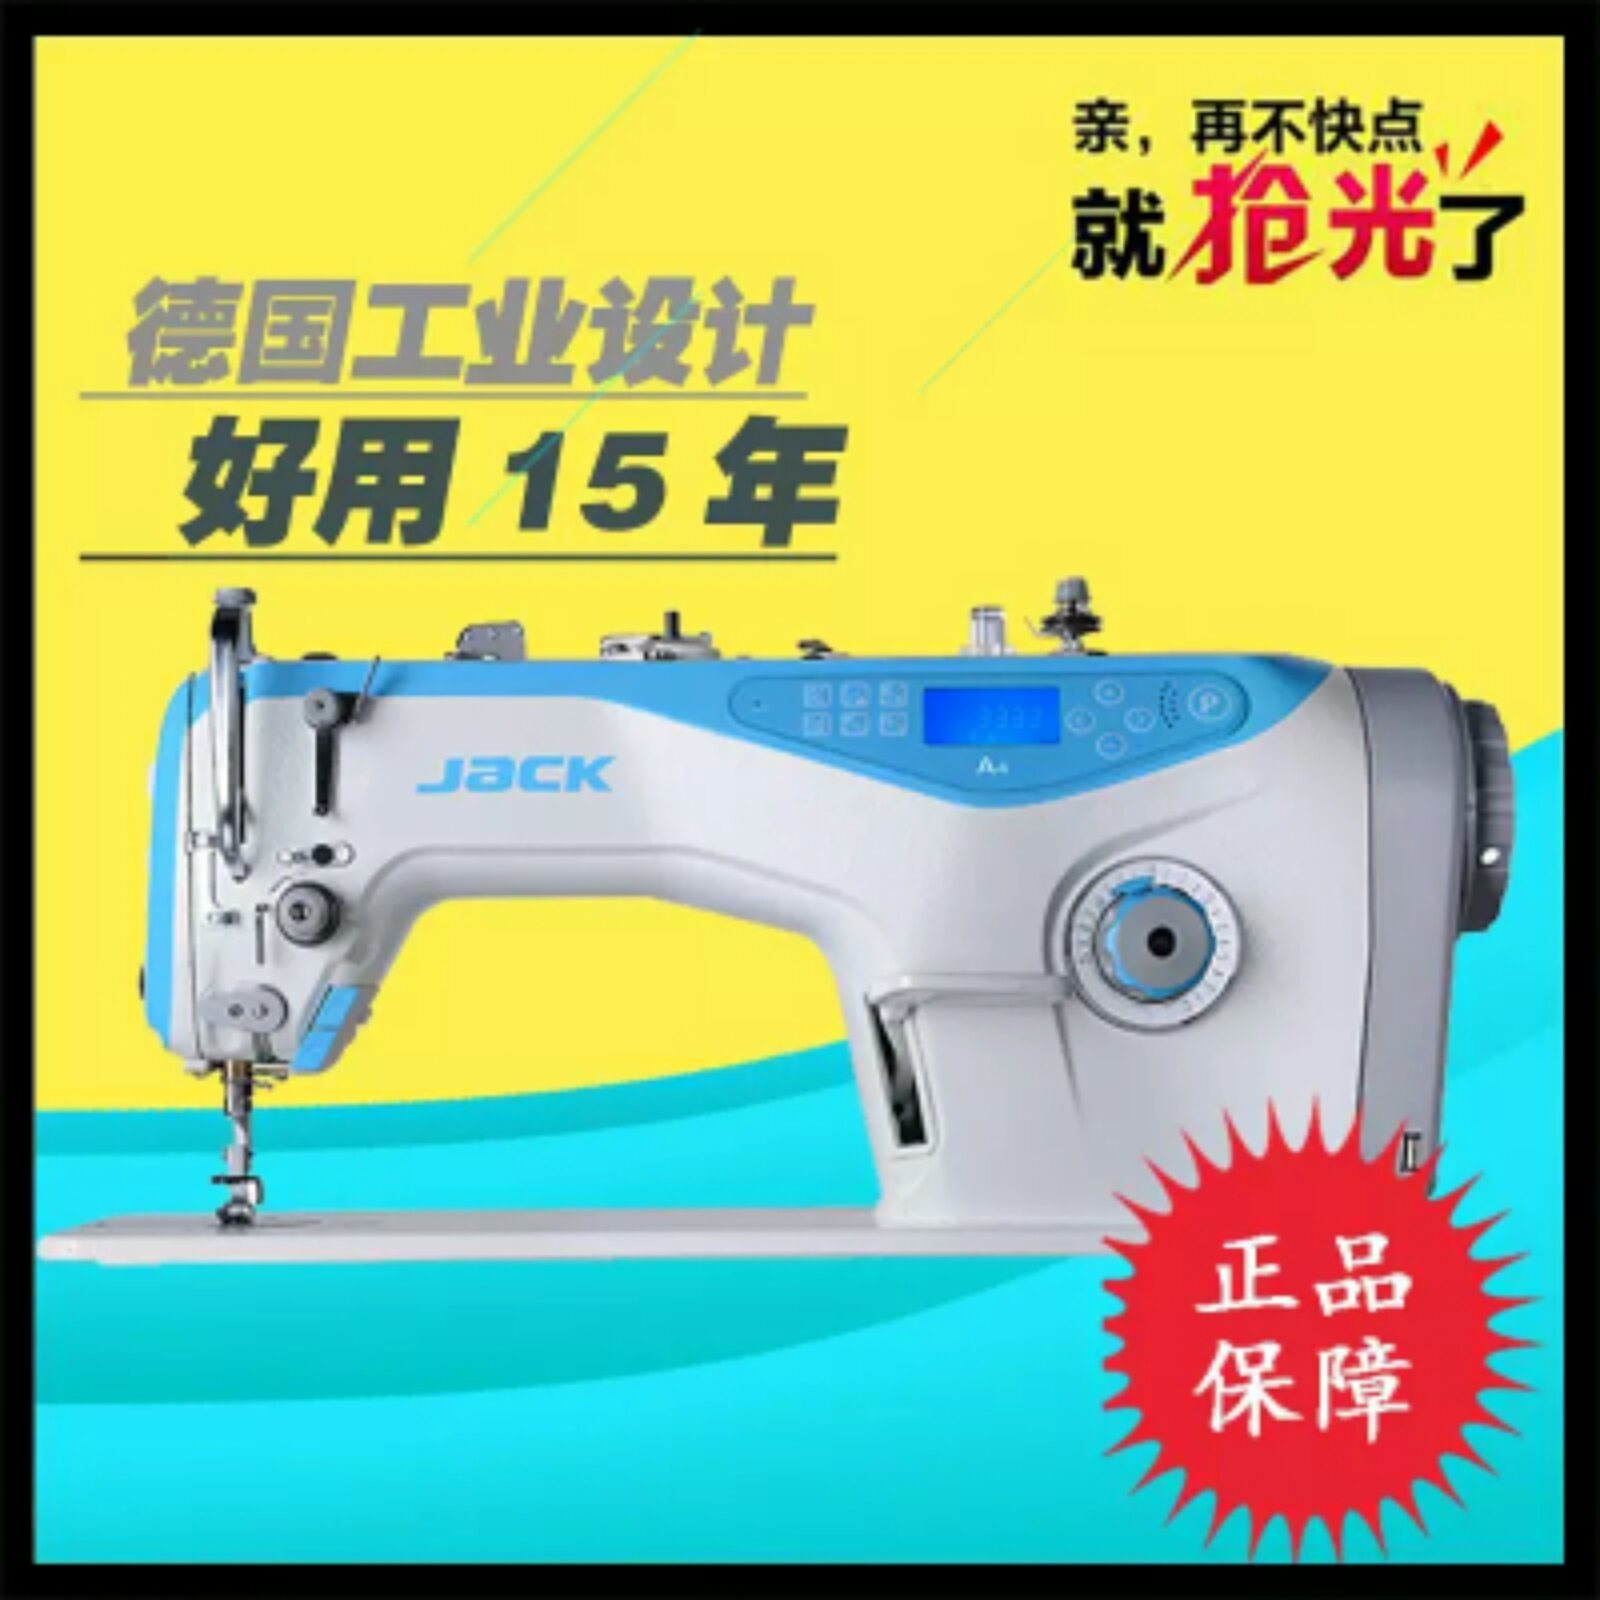 Jack Super Hi Speed Sewing Machine